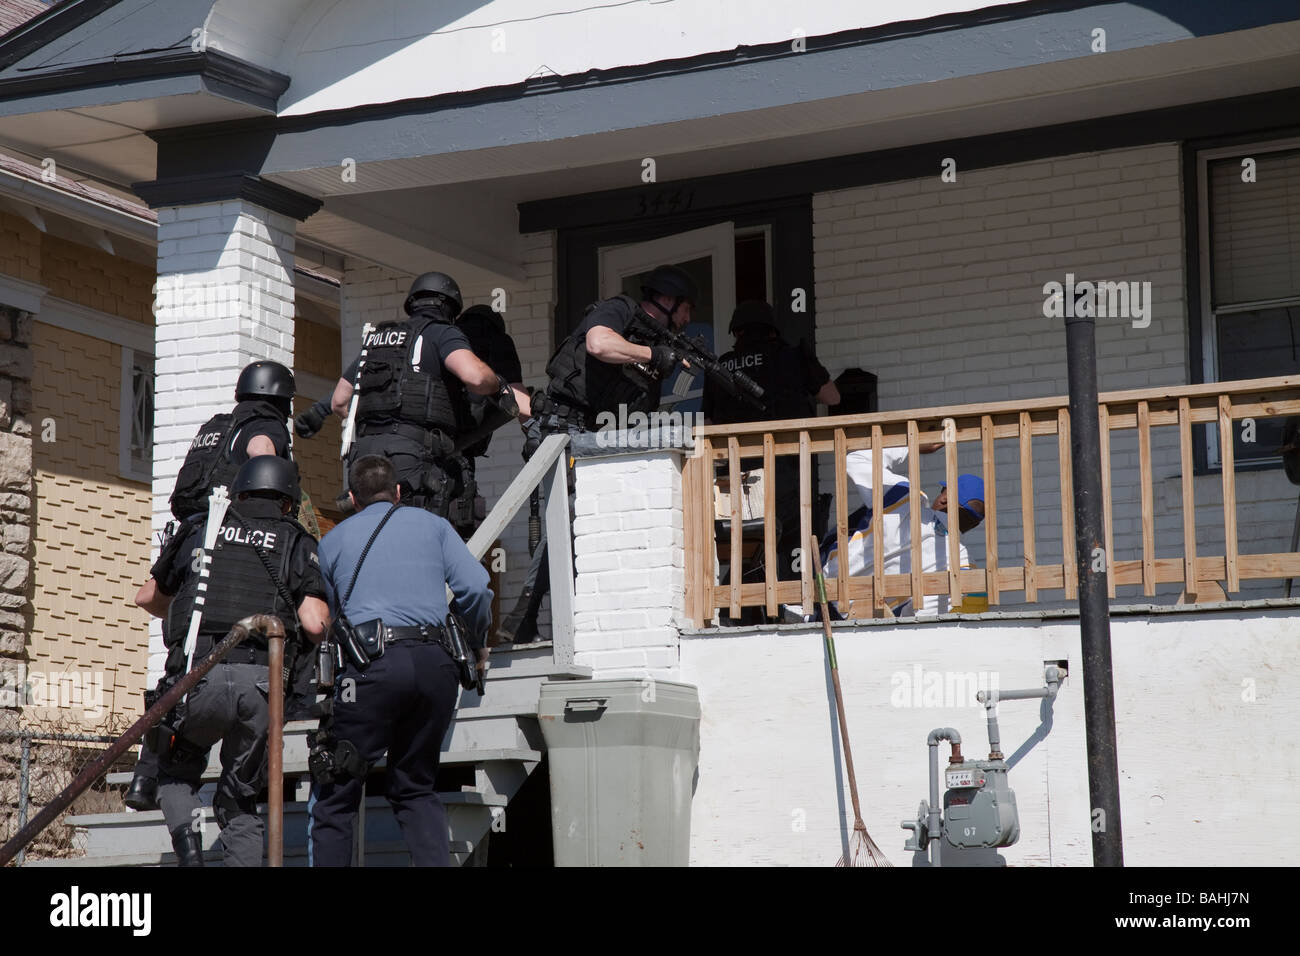 Police Tactical Team Serving A High Risk Drug-related